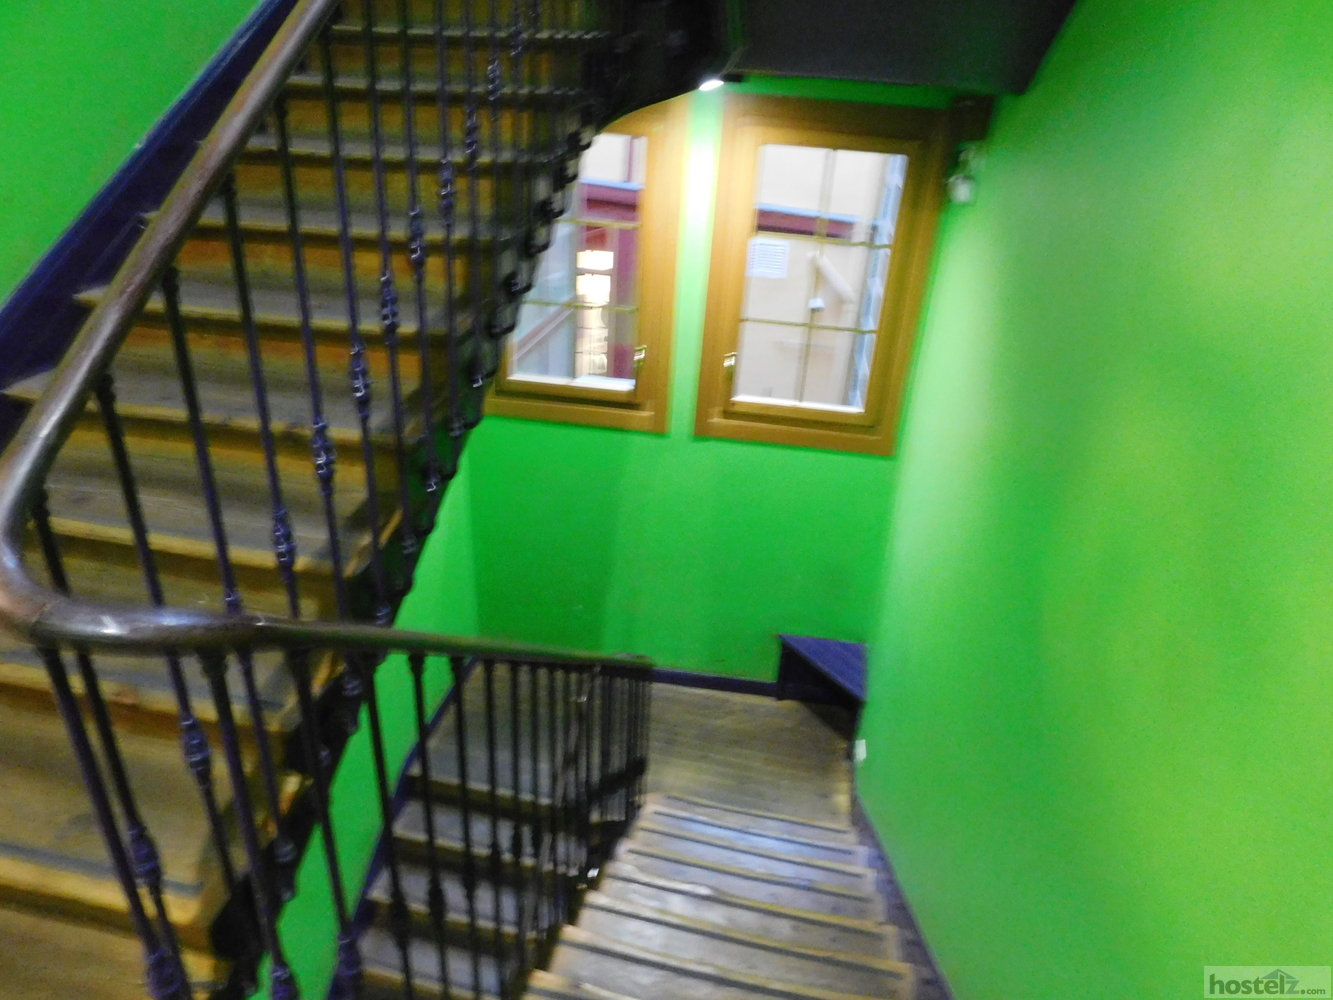 Common area: Stairs